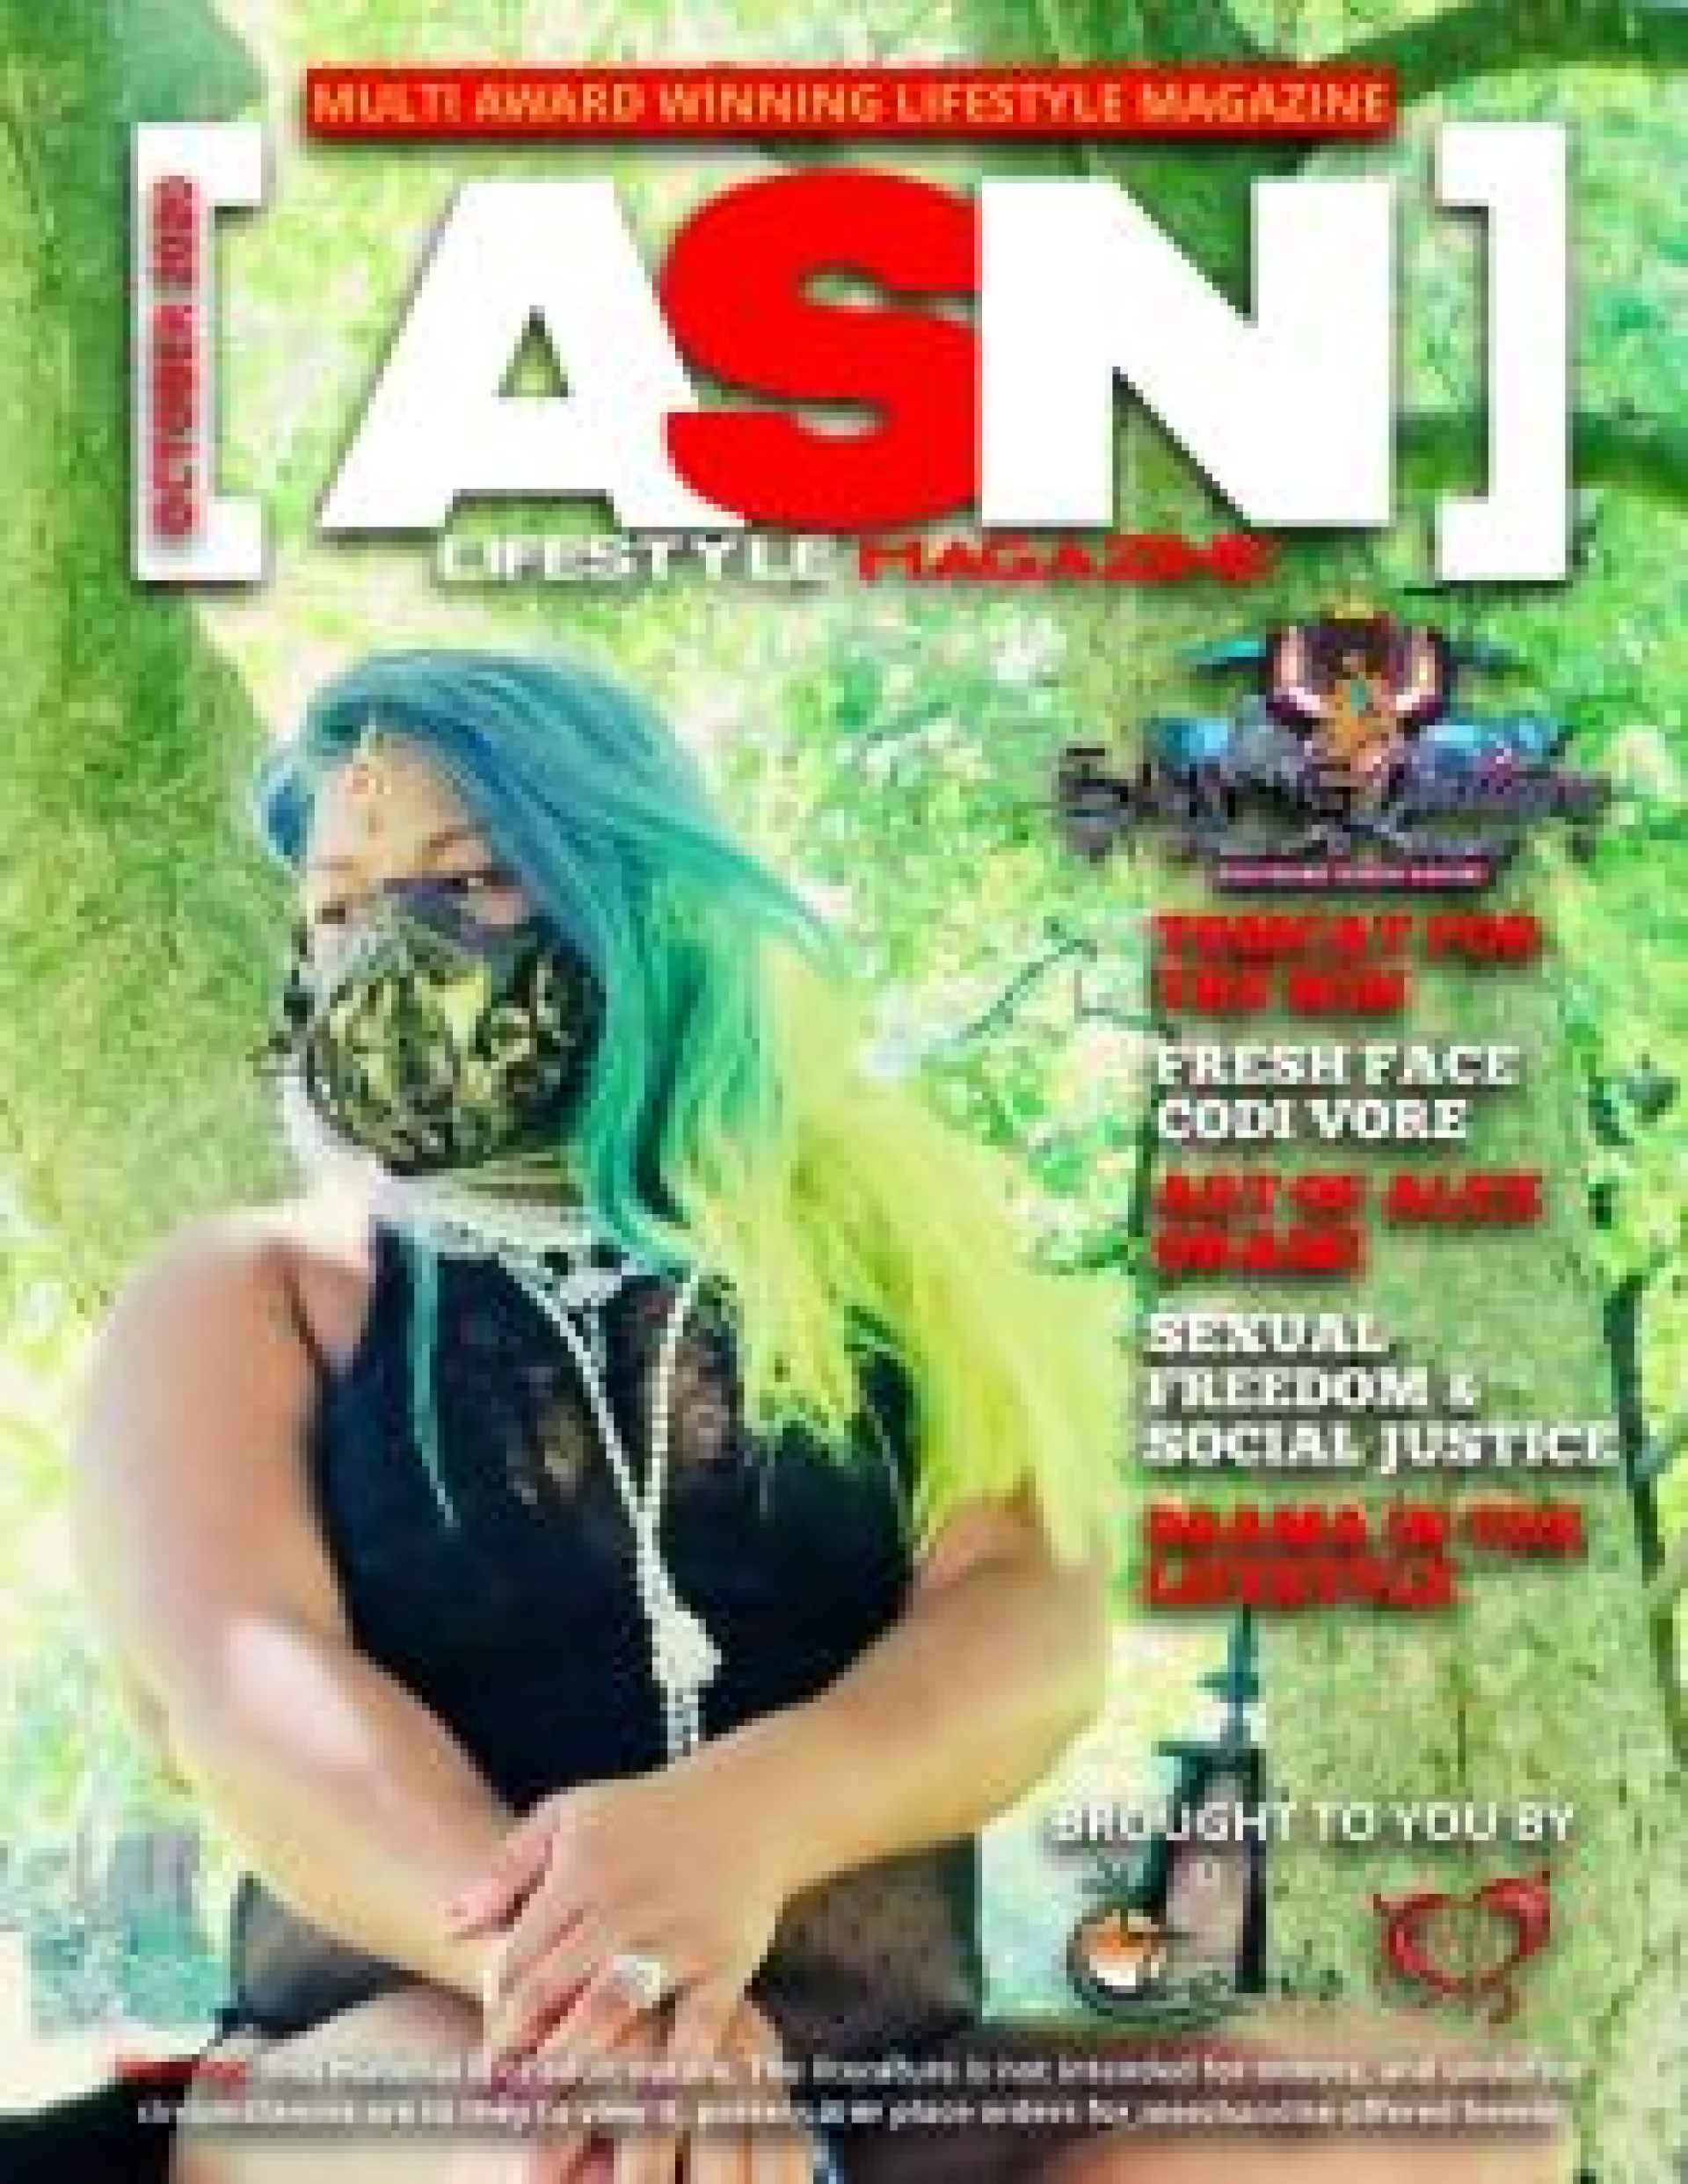 ASN Lifestyle Magazine October 2020 Issue Cover